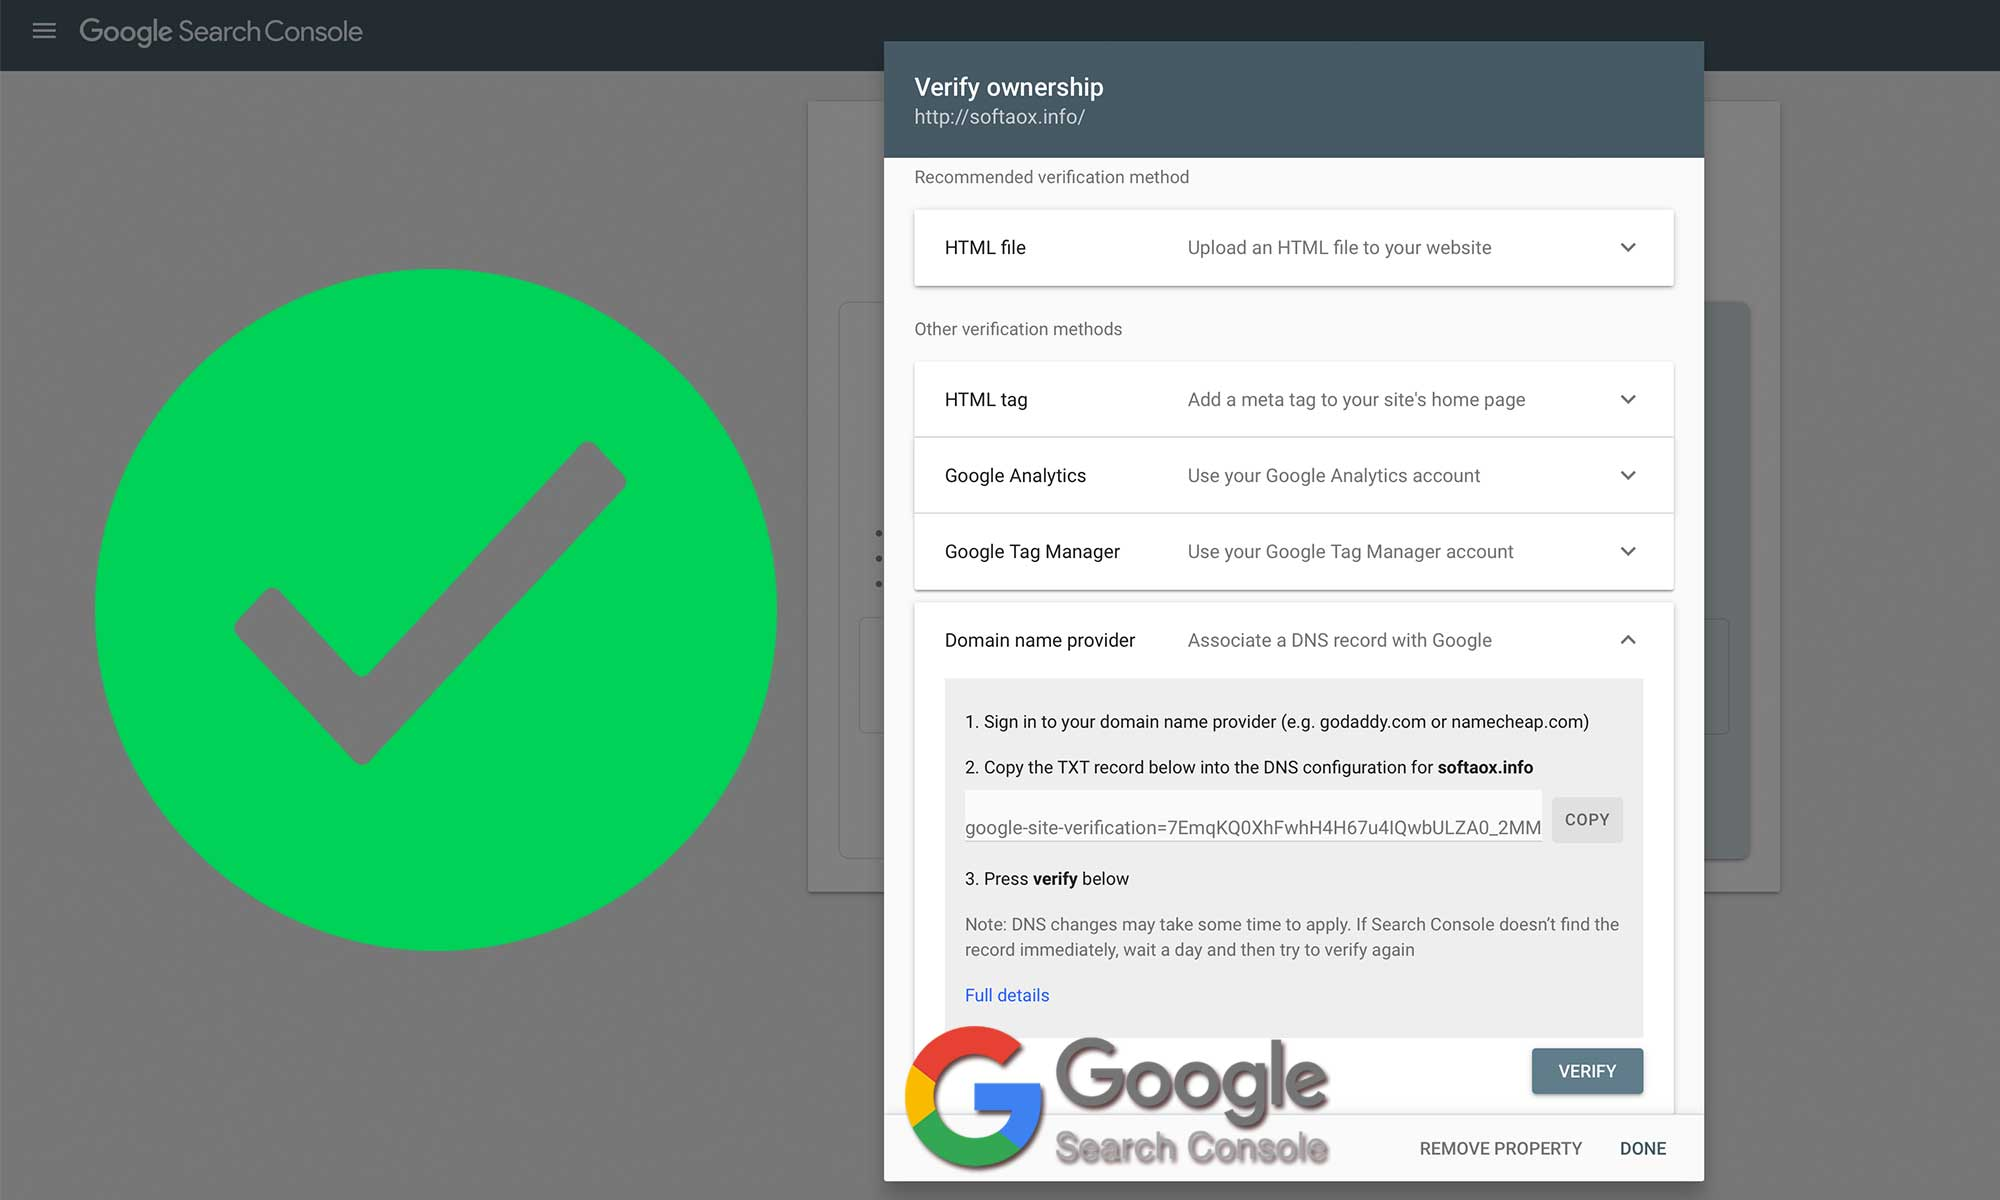 Google Site Verification: 5 Ways to Verify With Google Search Console